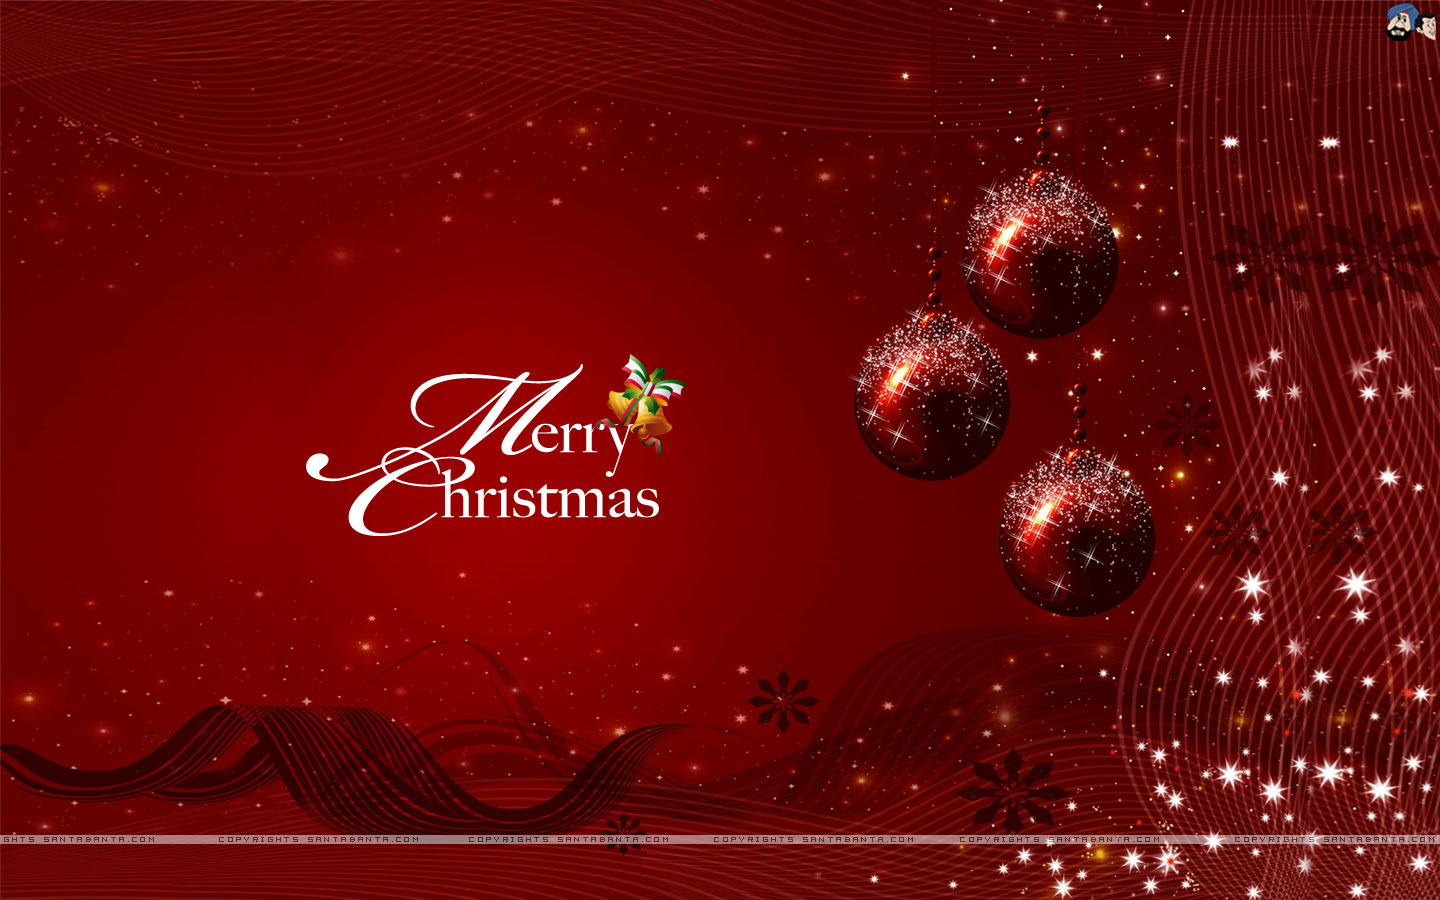 happy christmas wallpapers smslatestsmsin 1440x900